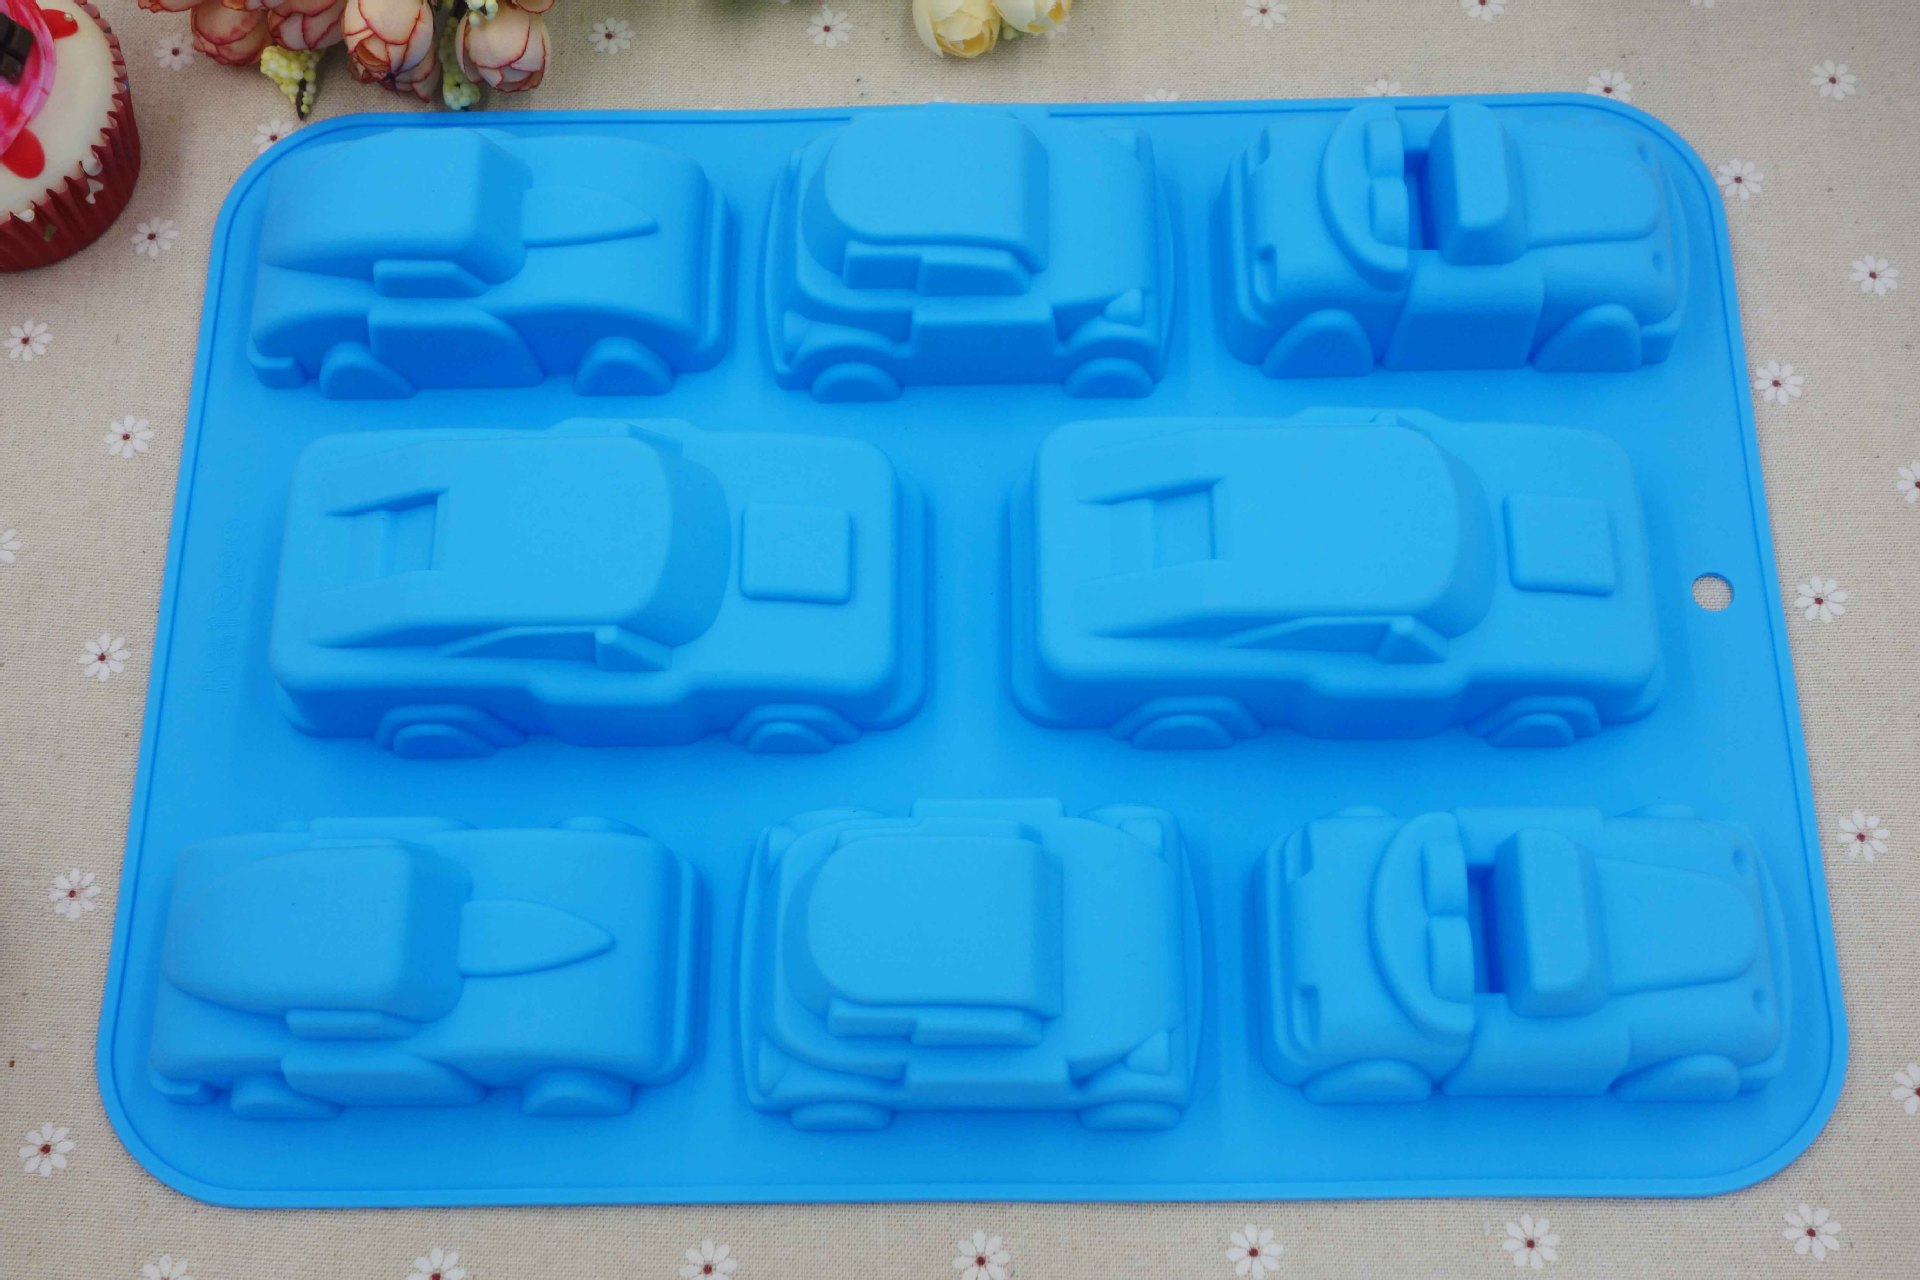 Car Molds For Cake Decorating : 8 car styling fondant cake molds soap chocolate mould for ...